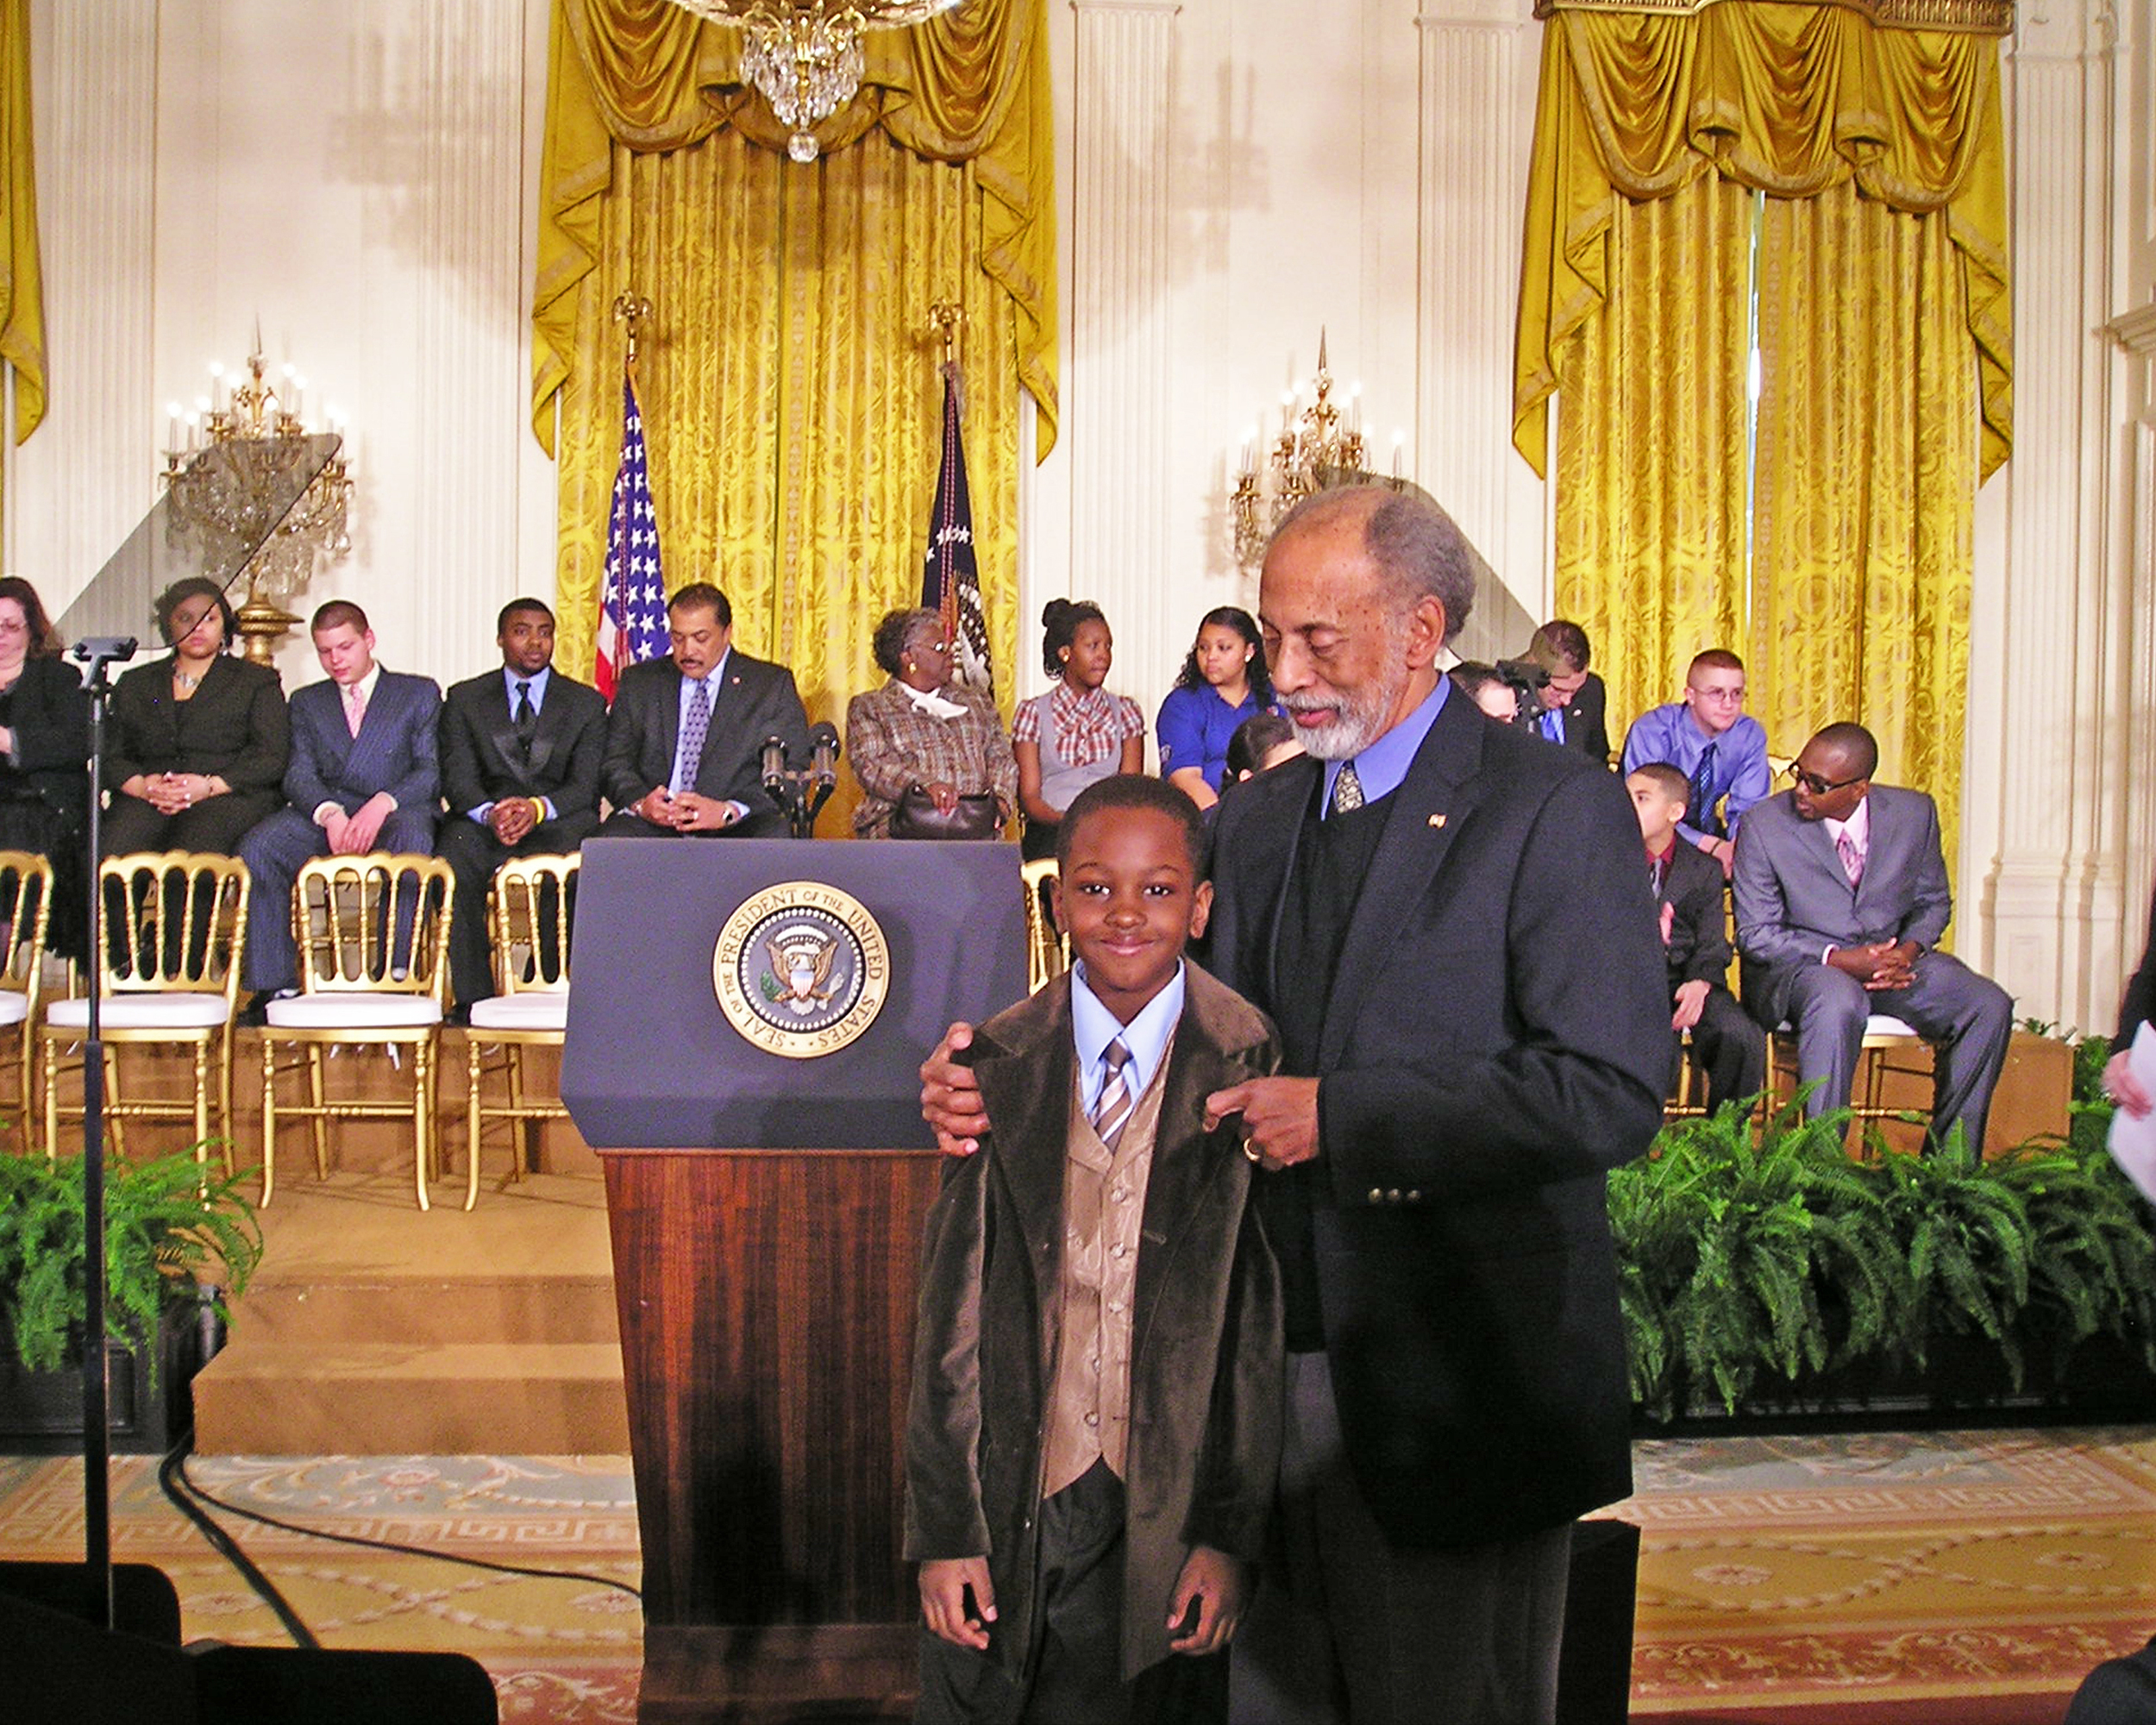 Willie and Lehzan to the White House